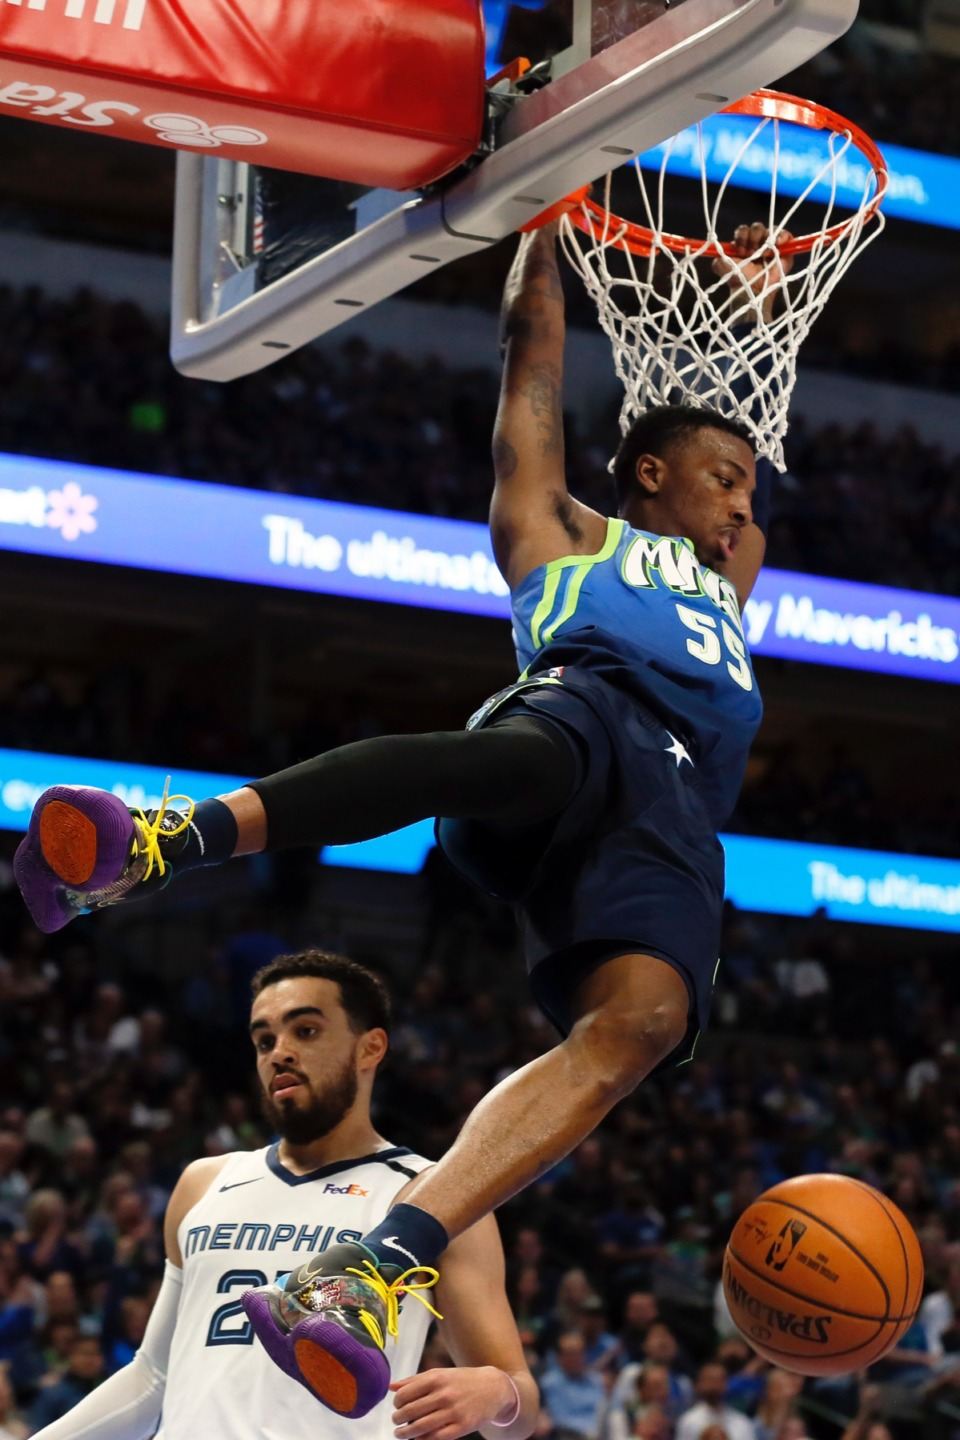 <strong>Dallas Mavericks guard Delon Wright, top, follows through on a dunk over Memphis Grizzlies guard Tyus Jones, bottom, during the first half of an NBA basketball game in Dallas, Friday, March 6, 2020.</strong> (Ray Carlin/AP)